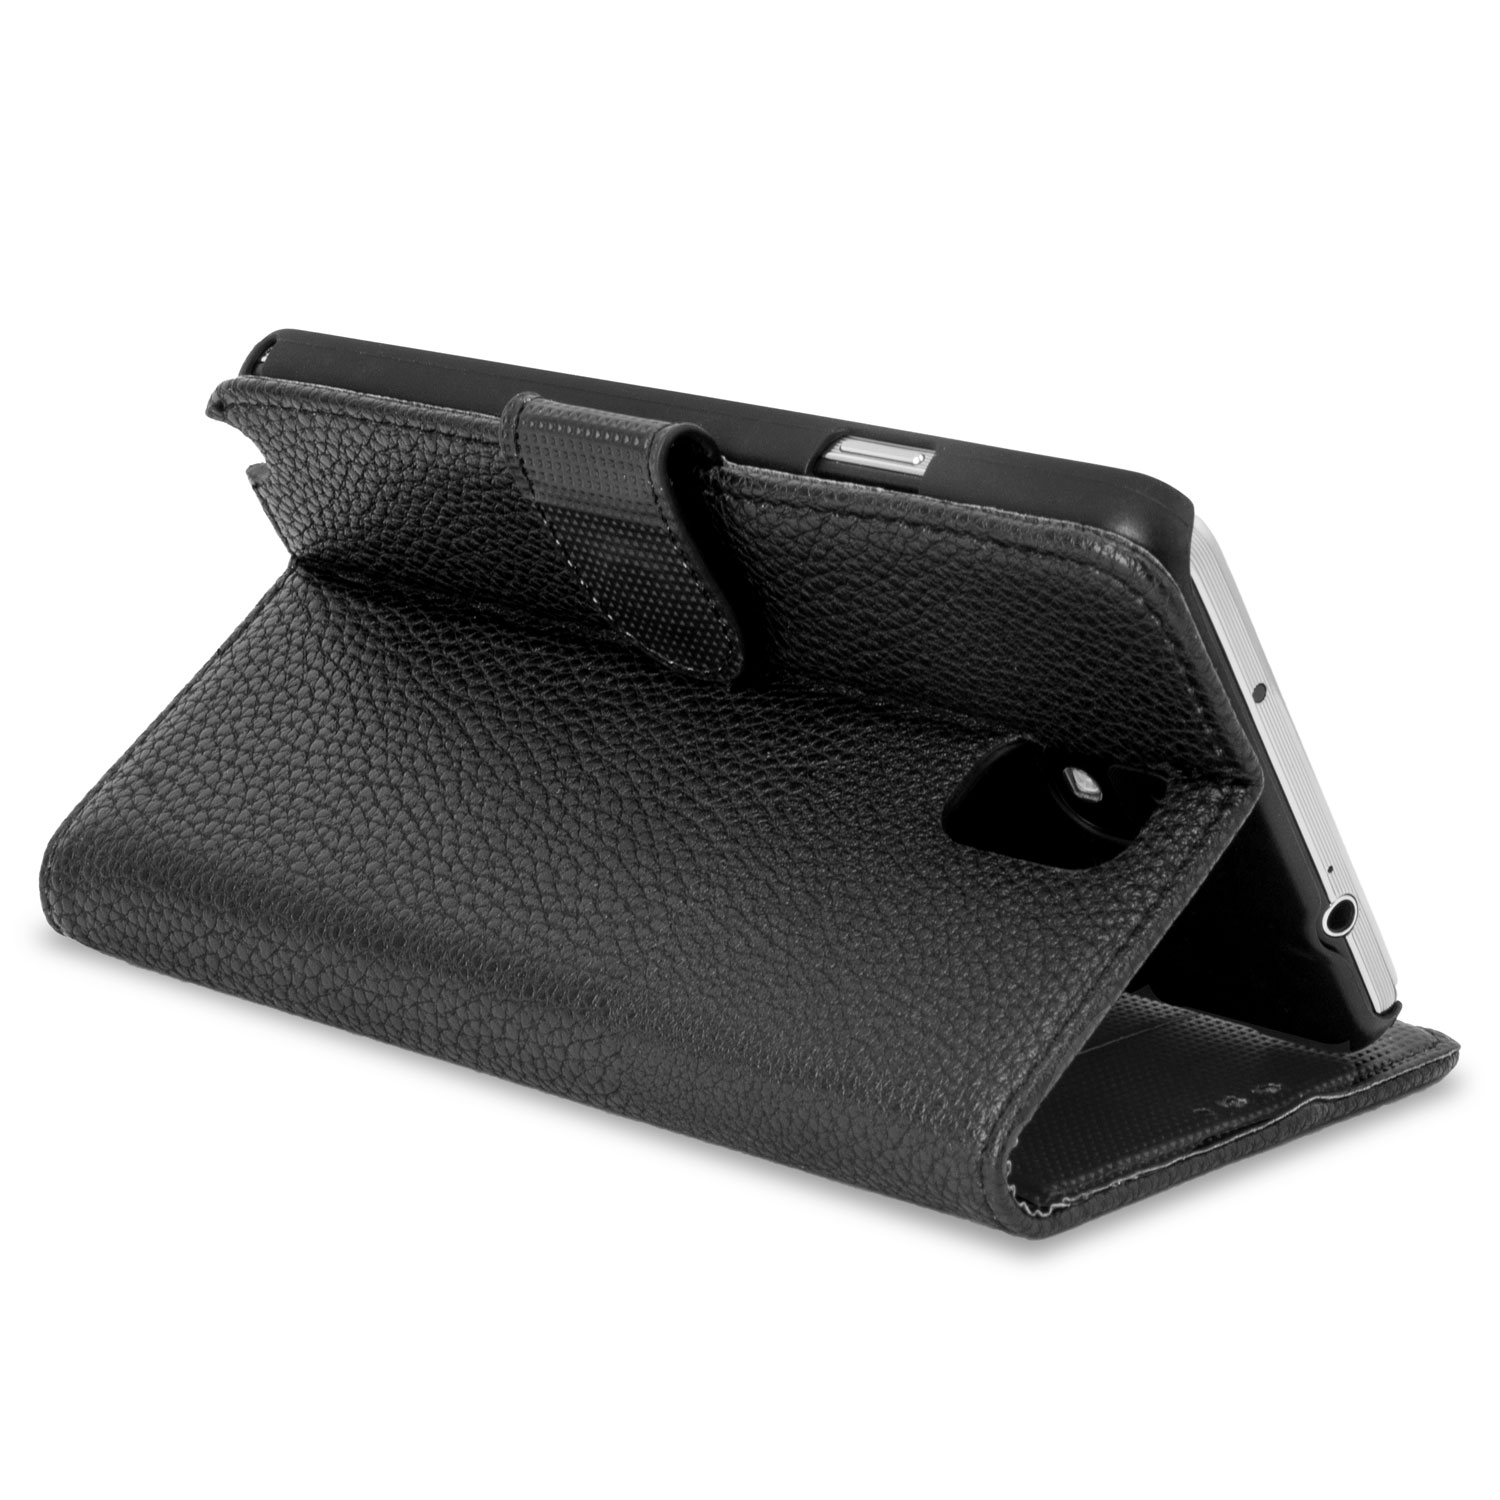 Adarga Leather Style Wallet Case For Samsung Galaxy Note 3 - Black